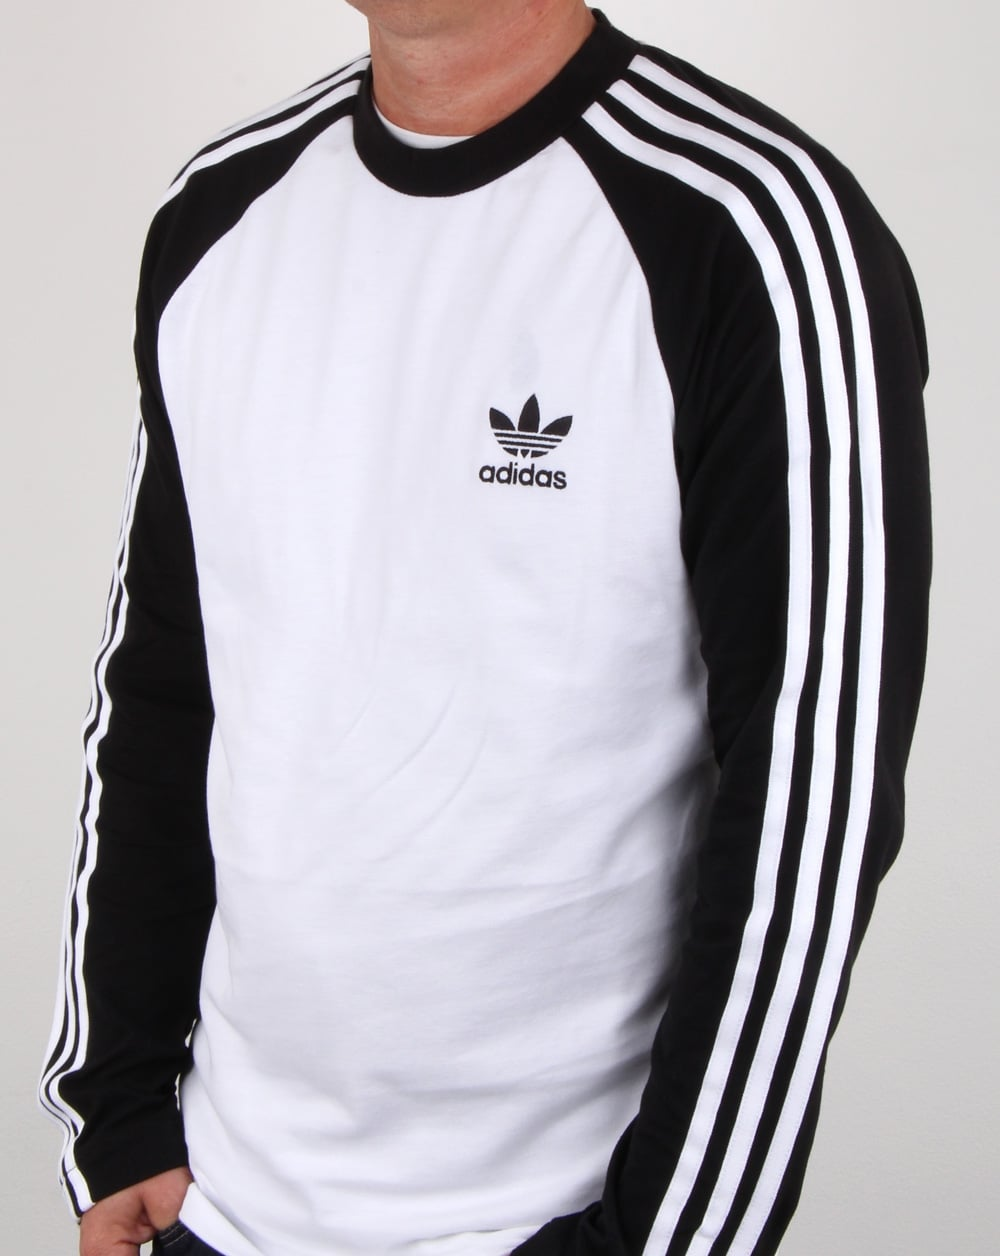 adidas Originals Adidas Originals Long Sleeve 3 Stripes T Shirt White Black 0642473b0